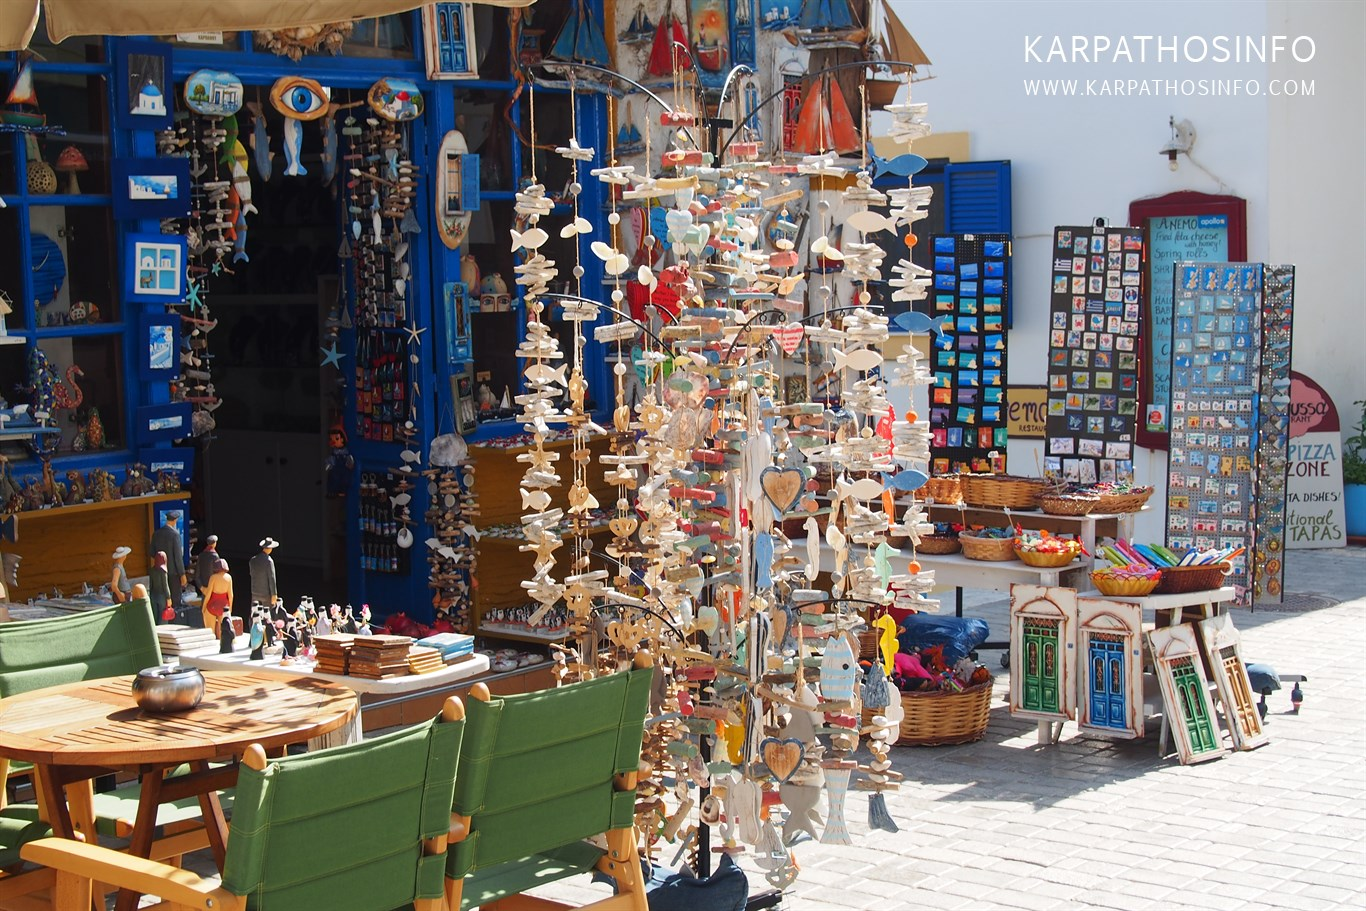 Souvenir shop in Karpathos